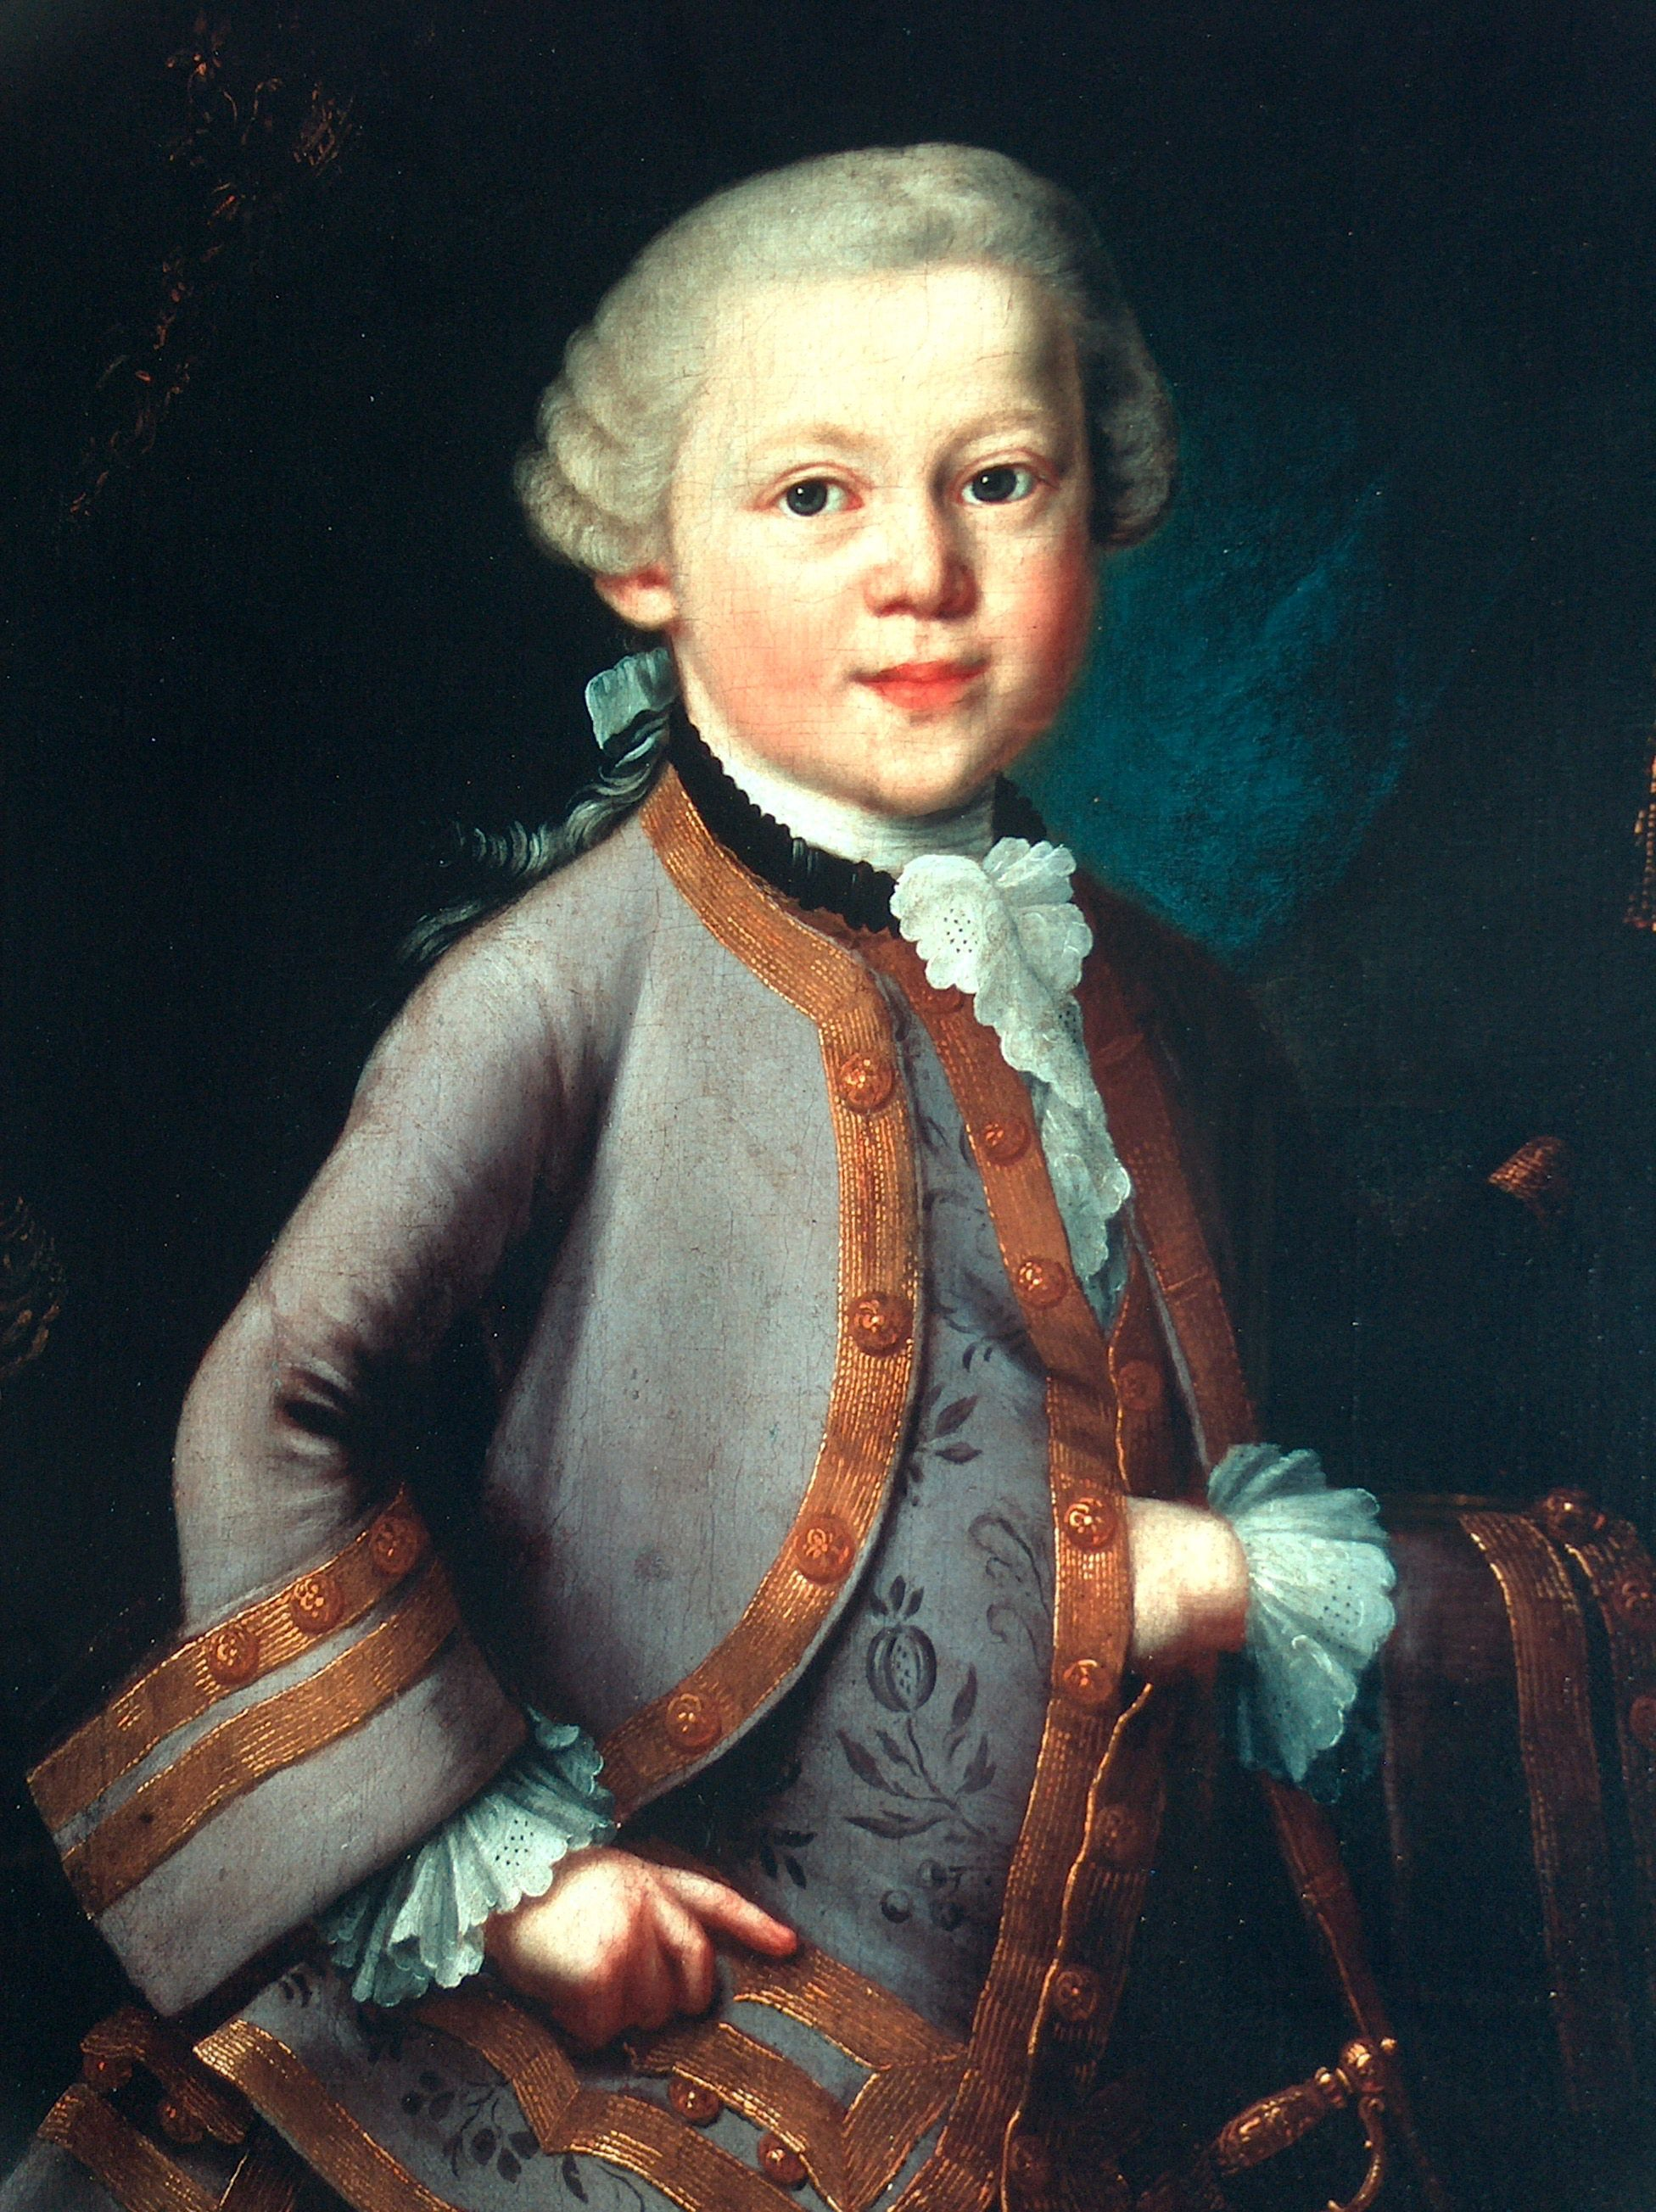 Mozart may have had an ASD. (www2.bon.de)